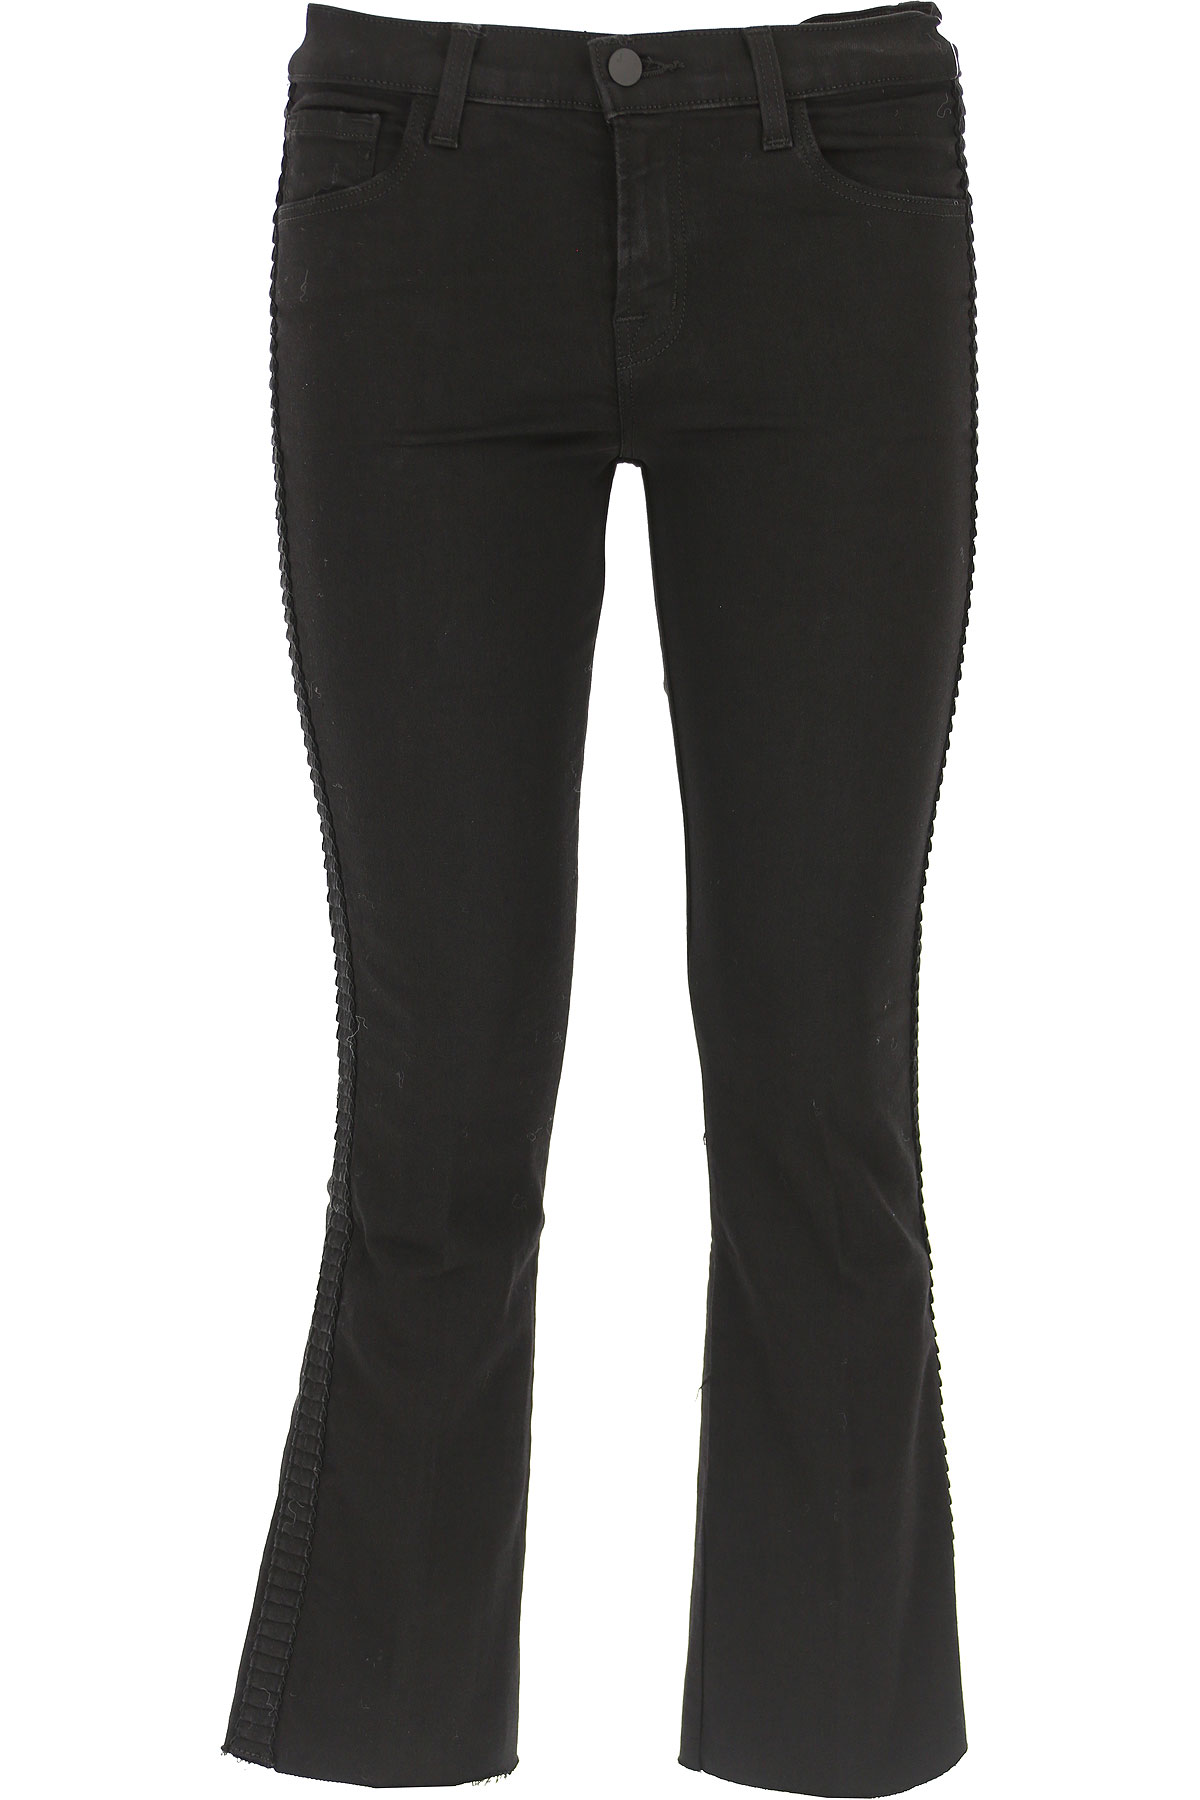 Image of J Brand Jeans, Black, Cotton, 2017, 24 26 27 28 29 30